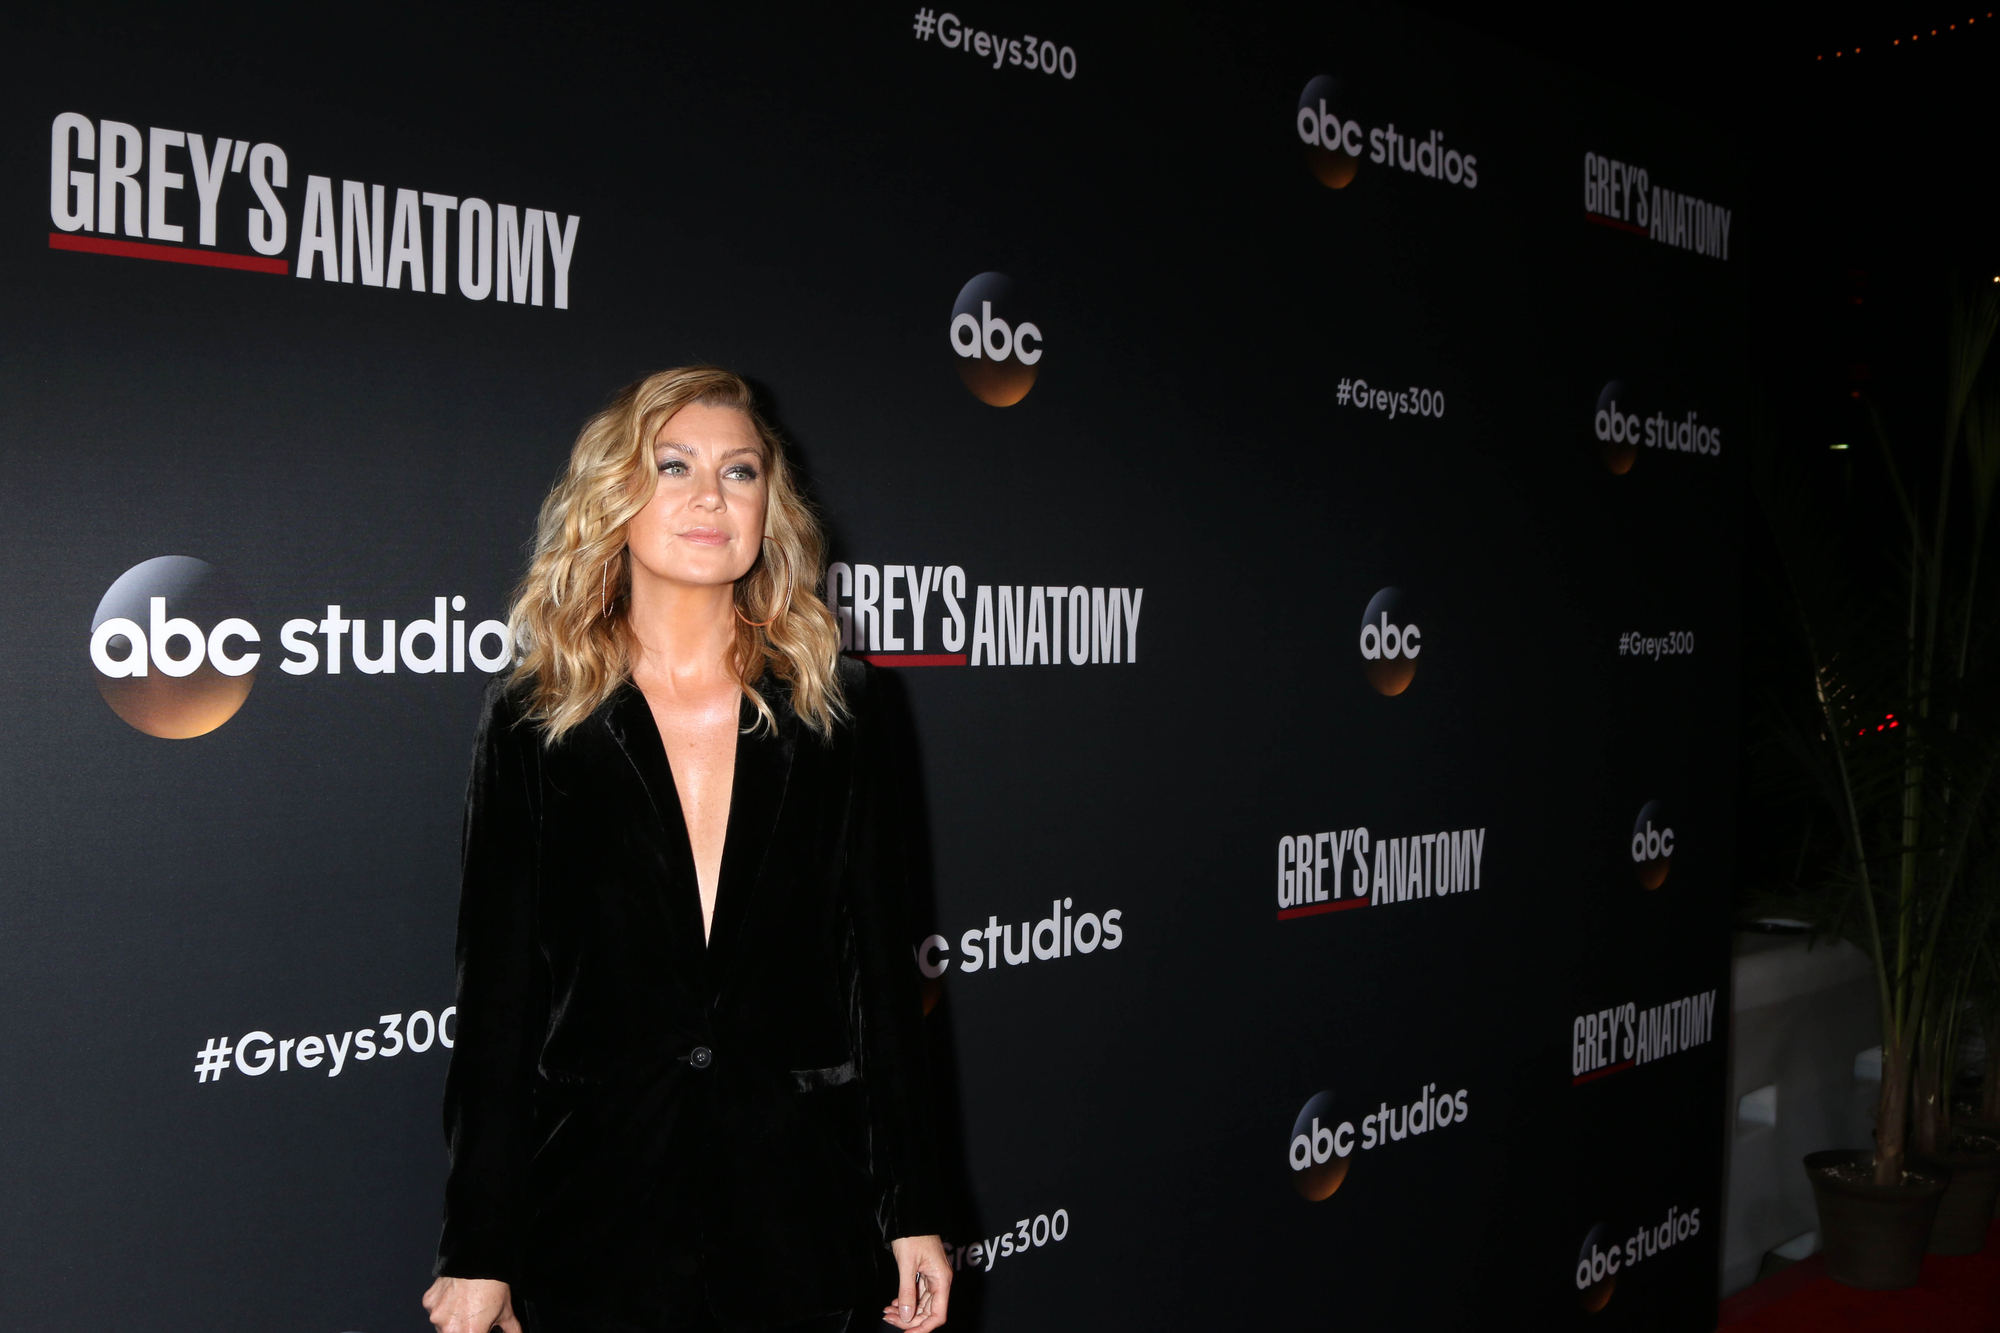 Ellen Pompeo at the Grey's Anatomy 300th episode event in Los angeles